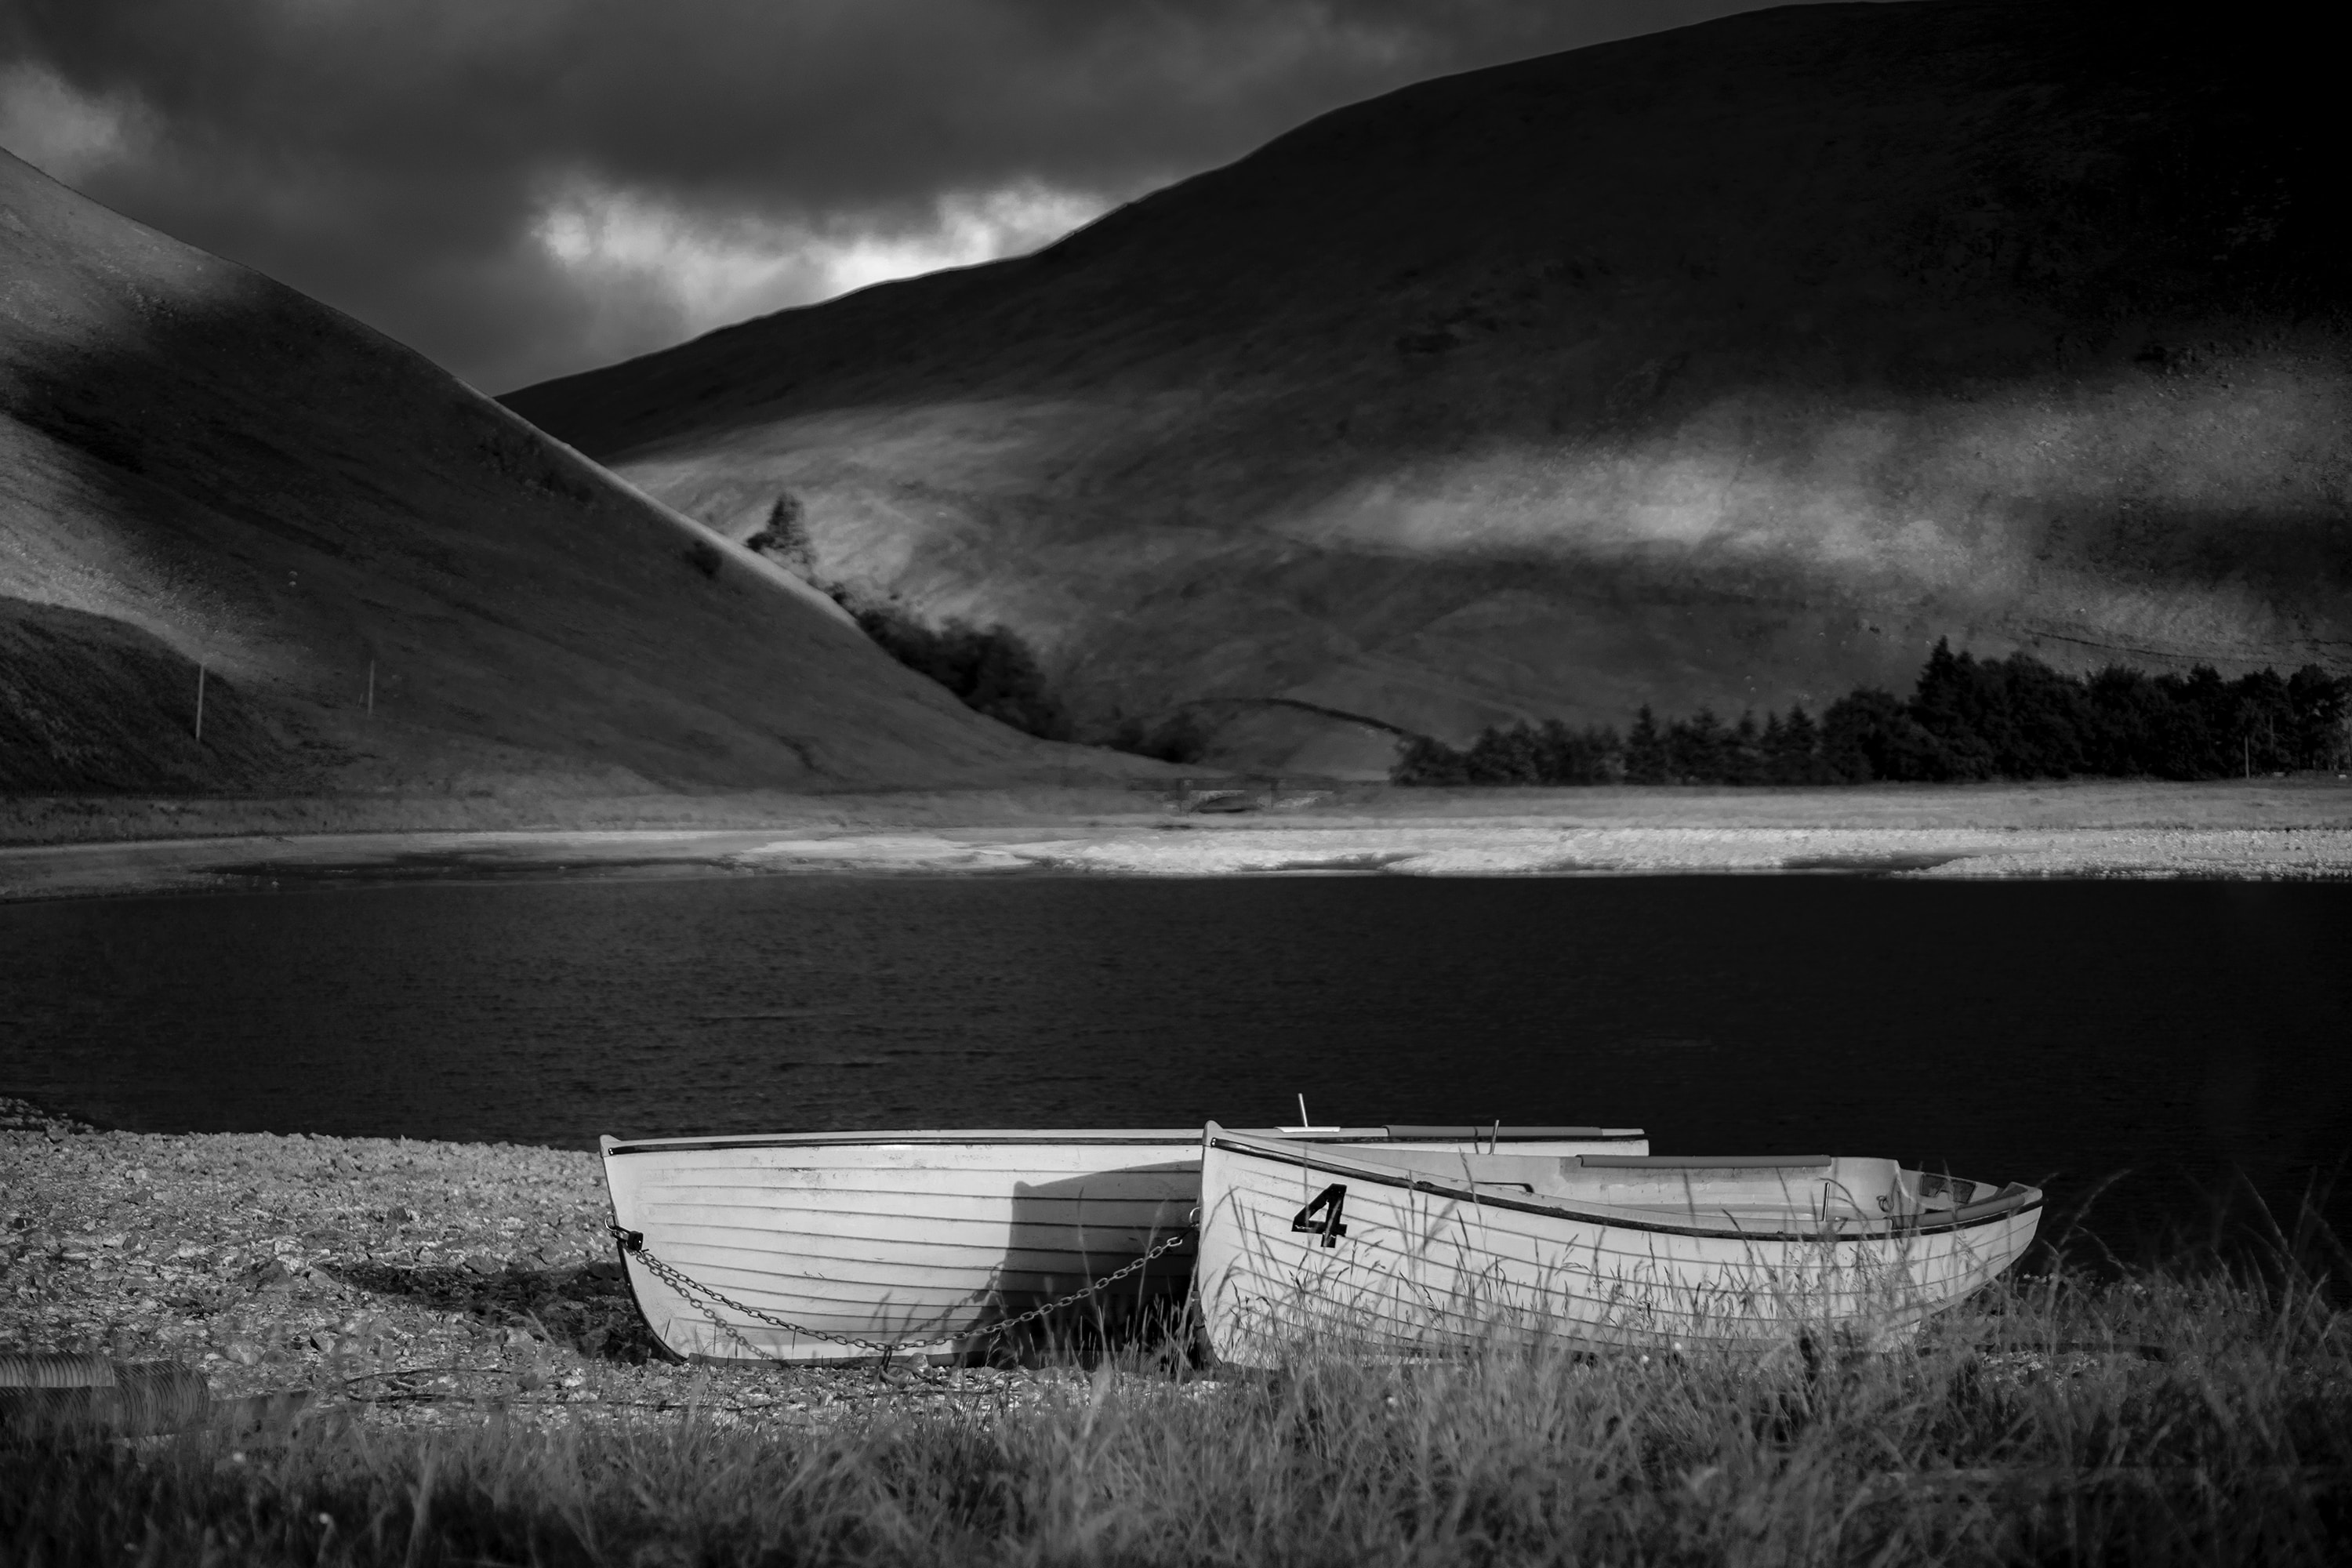 grayscale photography of jon boat on seashore